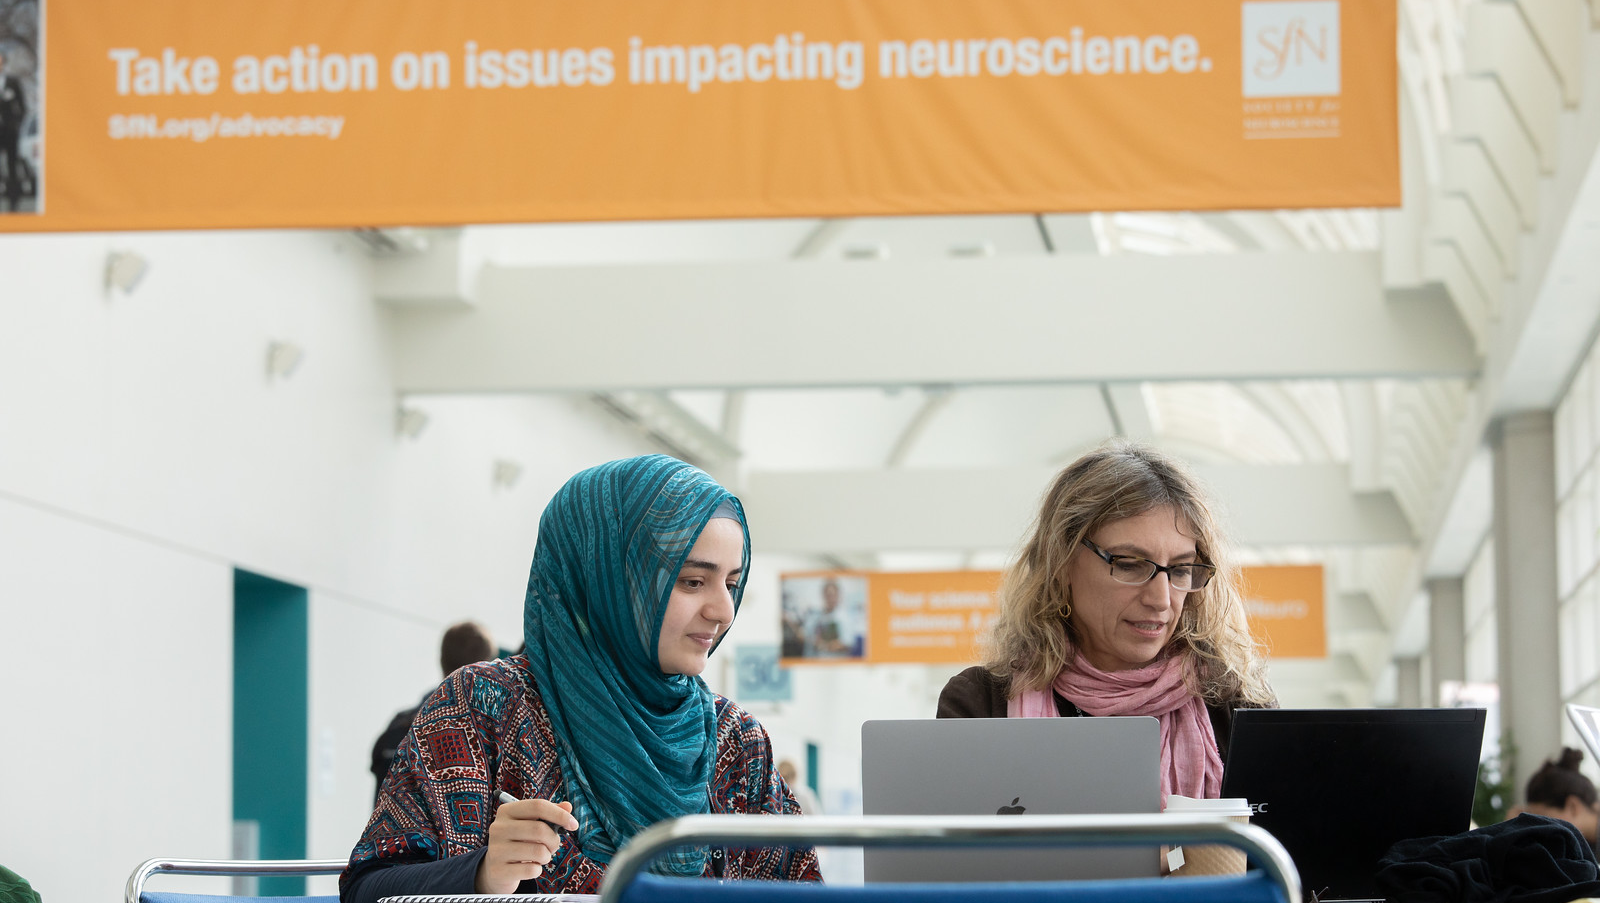 Attendees at Neuroscience 2018 catch up on work between sessions